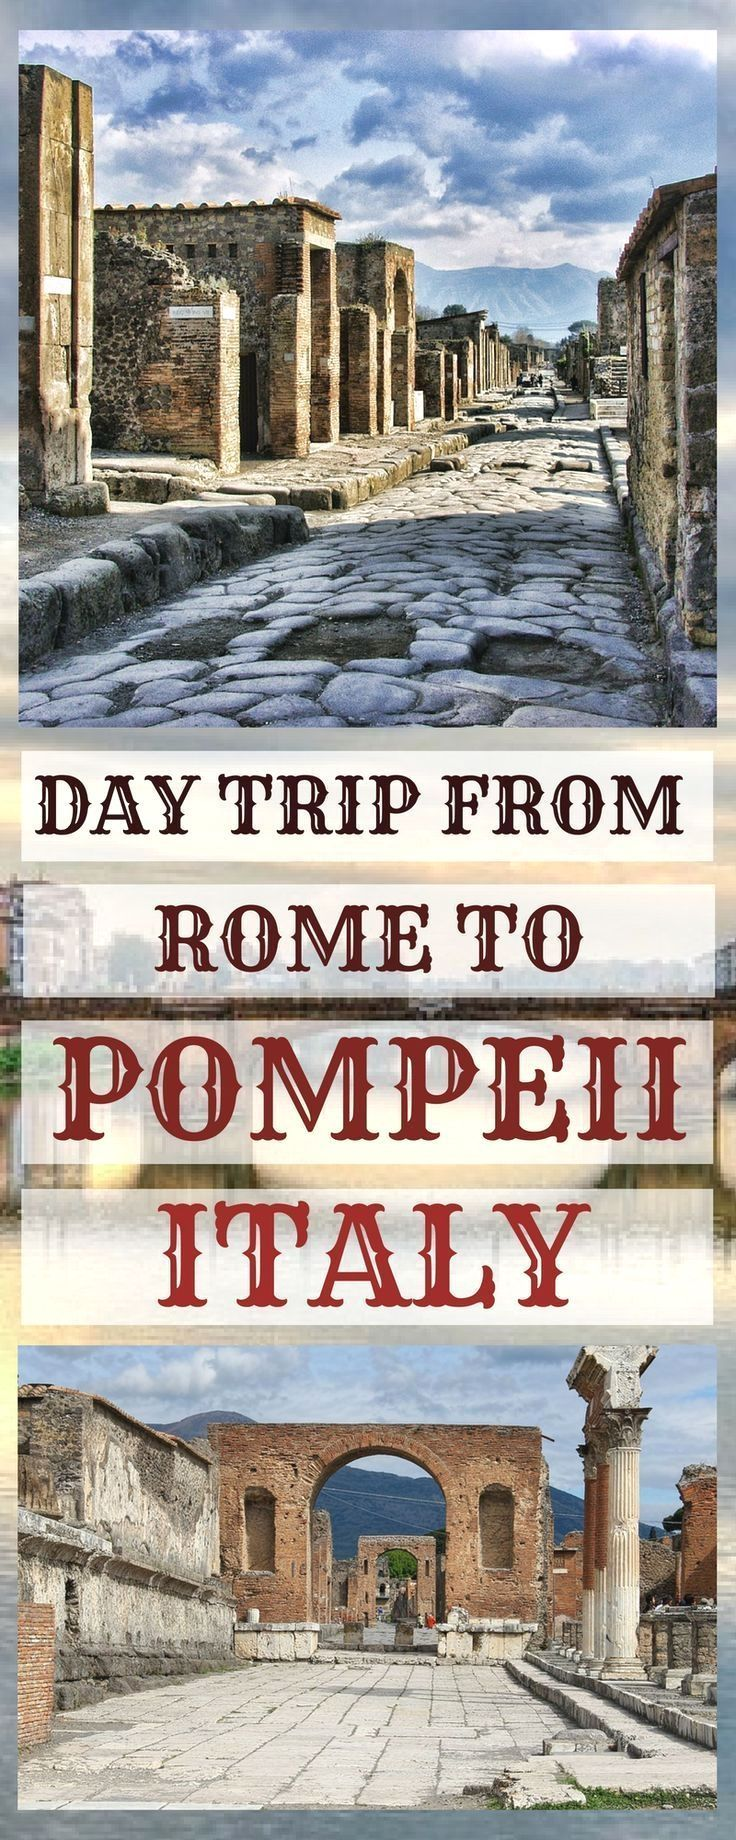 Photo of Pompeii day trip from Rome Italy